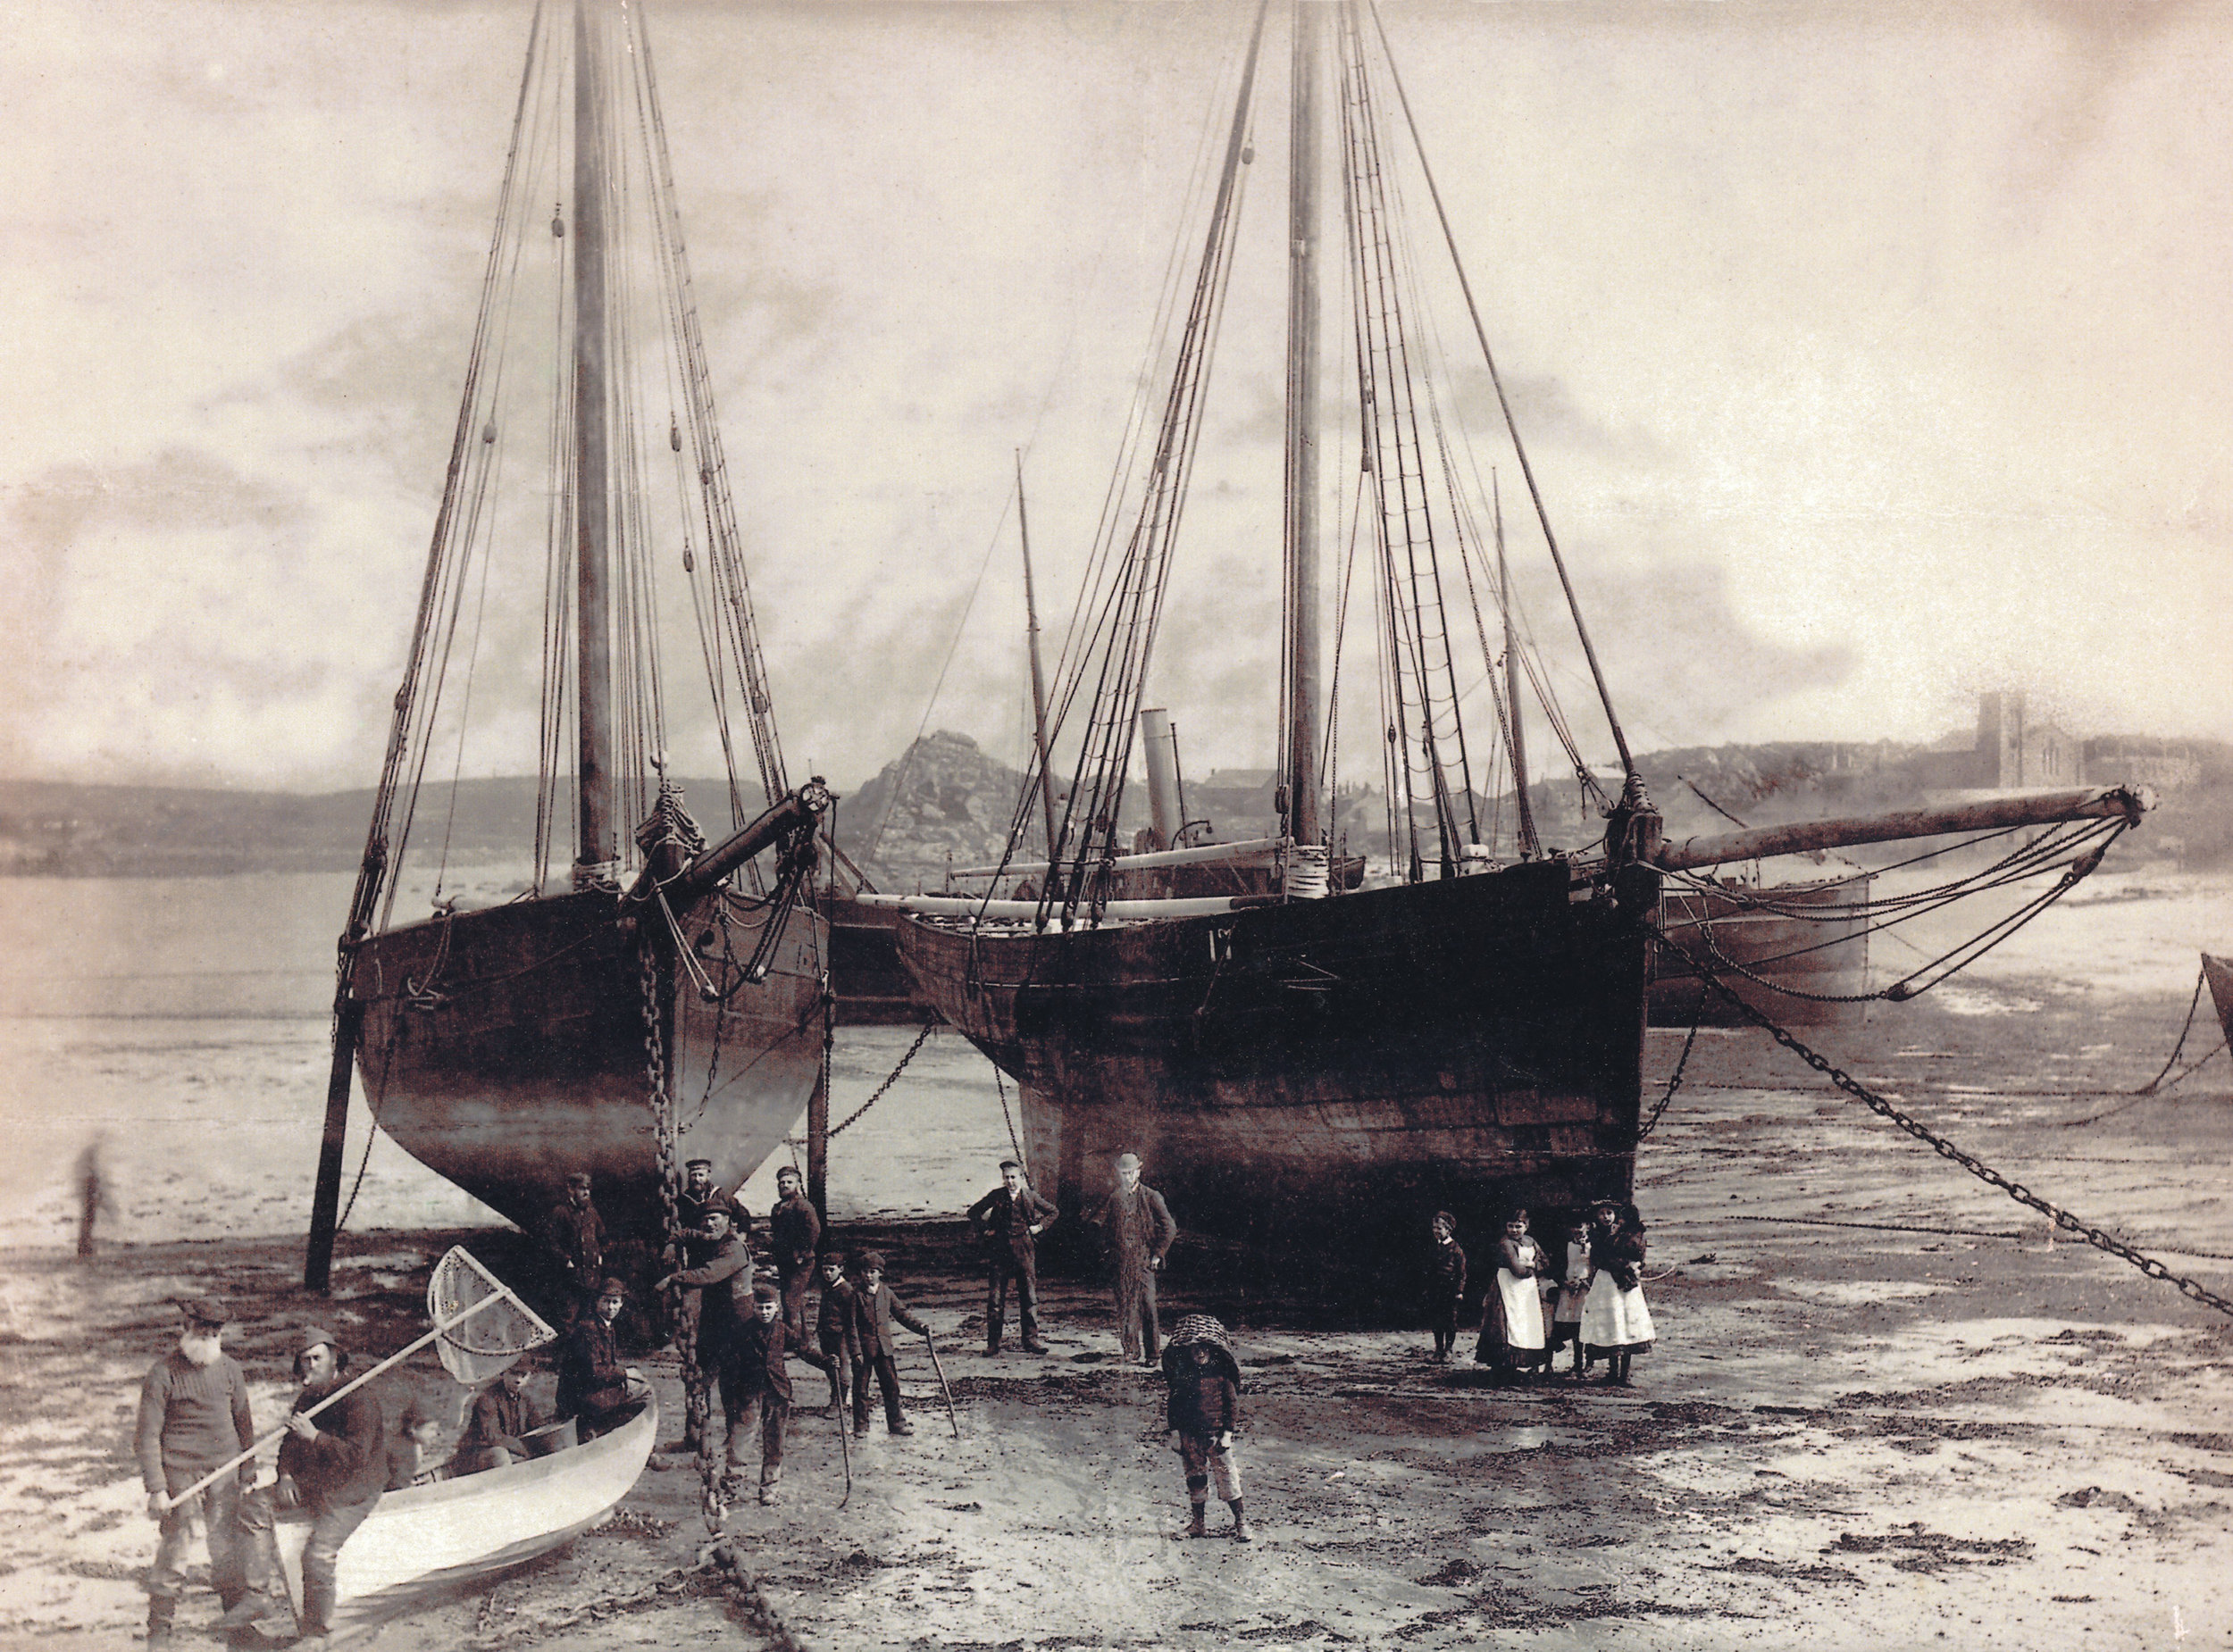 Cutters on Town Beach, St Mary's. C. J. King. 002.jpg